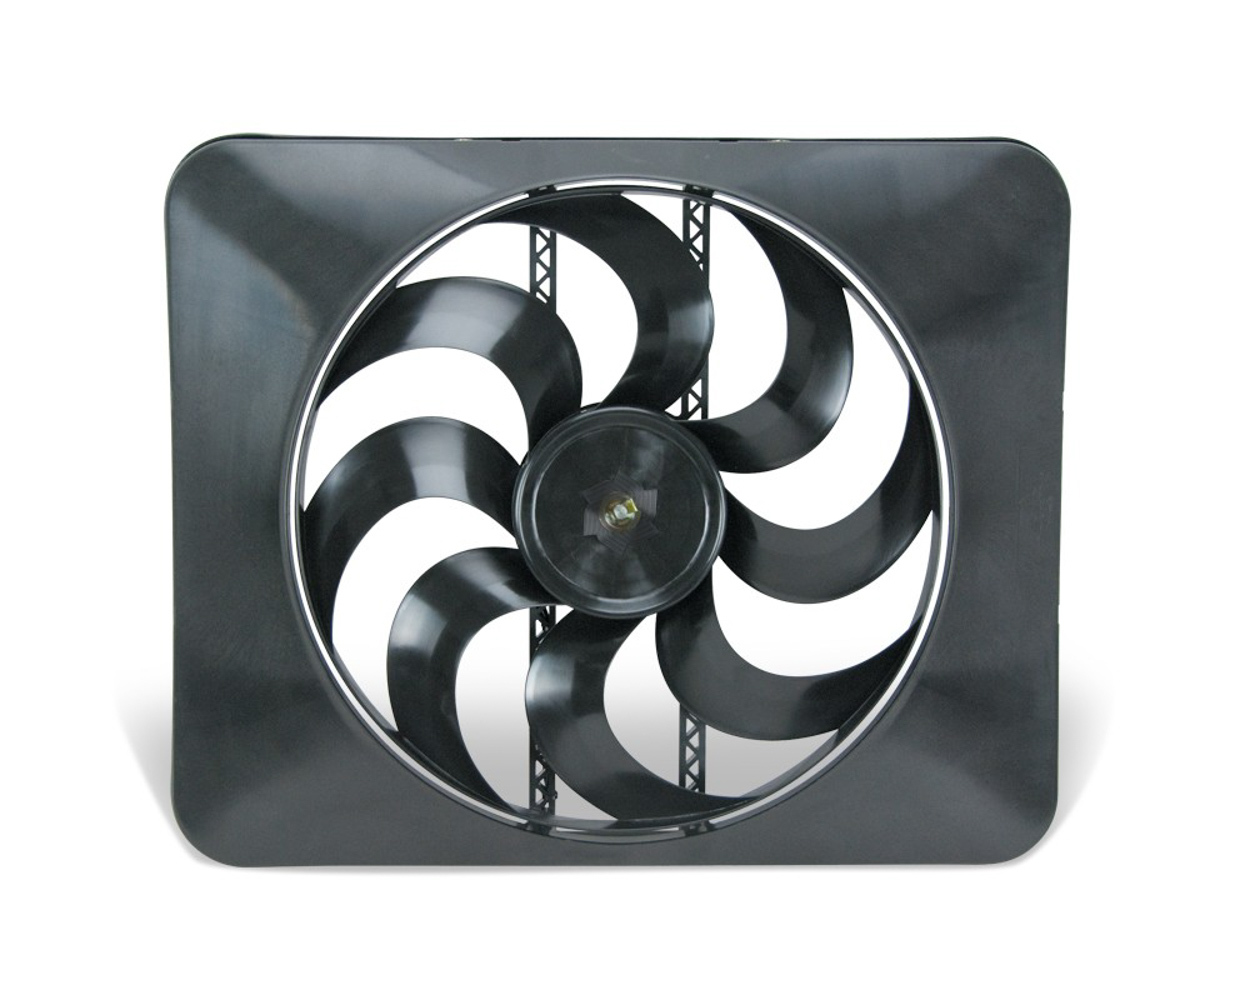 Flex-A-Lite 104367 Electric Cooling Fan, Black Magic Xtreme, 15 in Fan, Push / Pull, 3300 CFM, Curved Blade, 21-1/2 x 17-1/2 in, 4-3/16 in, Plastic, Each